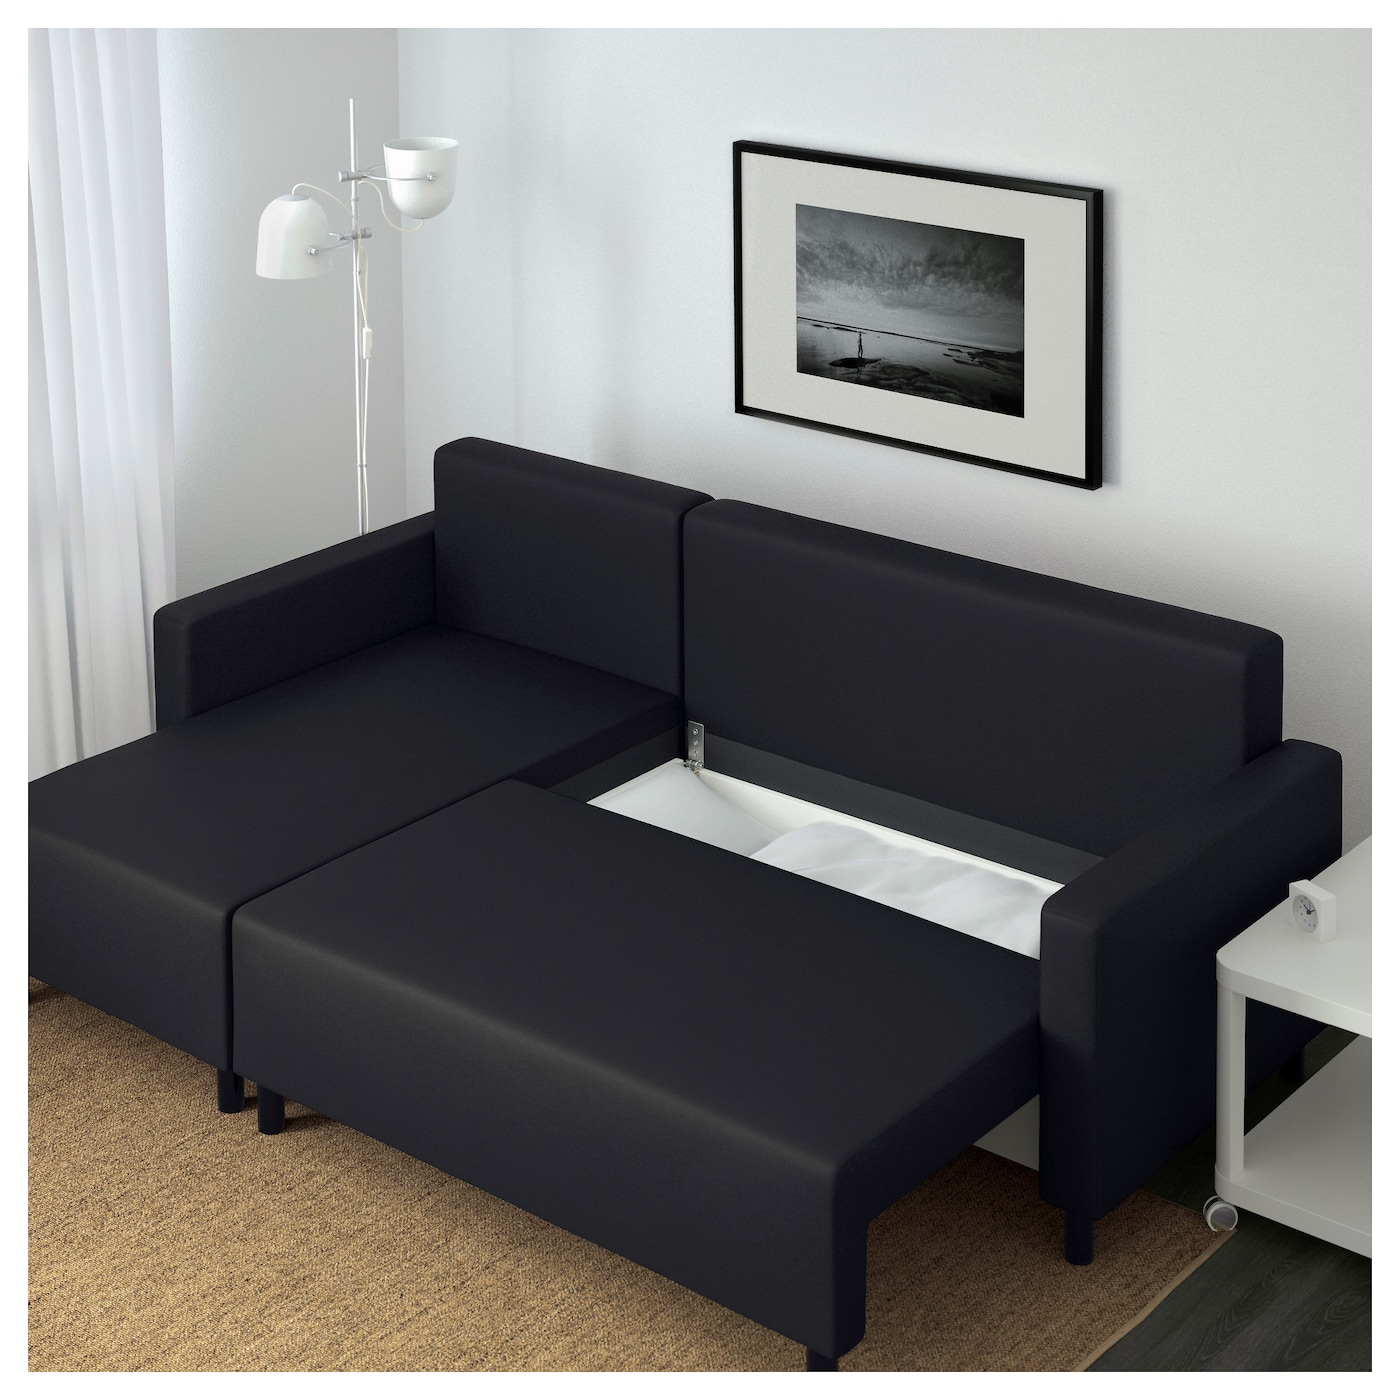 Lugnvik Sofa Bed With Chaise Longue Gran N Black Ikea